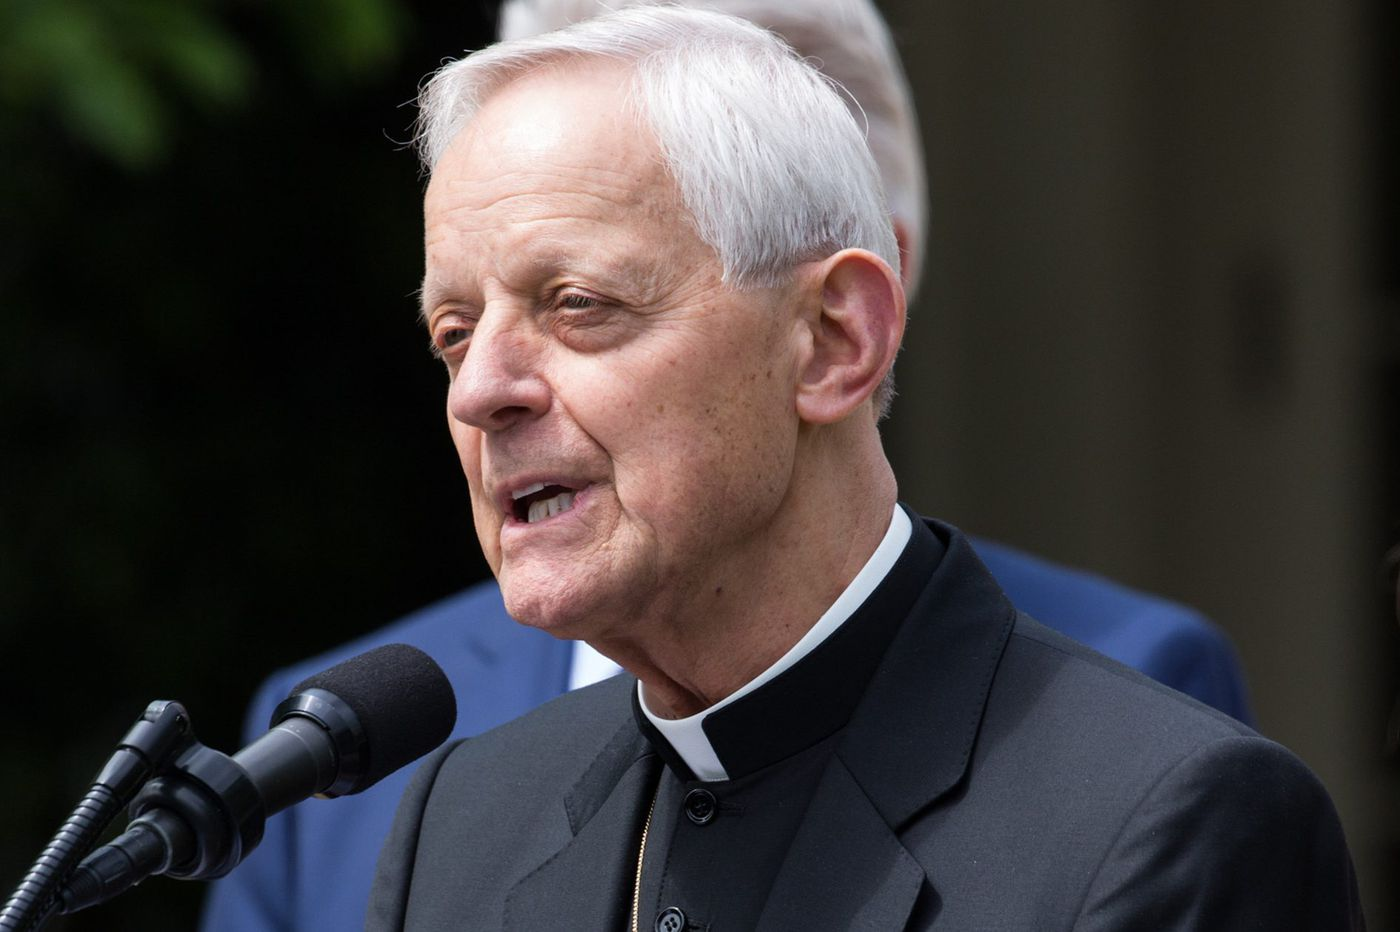 Pa. Catholic school removes name of cardinal cited in clergy-abuse report